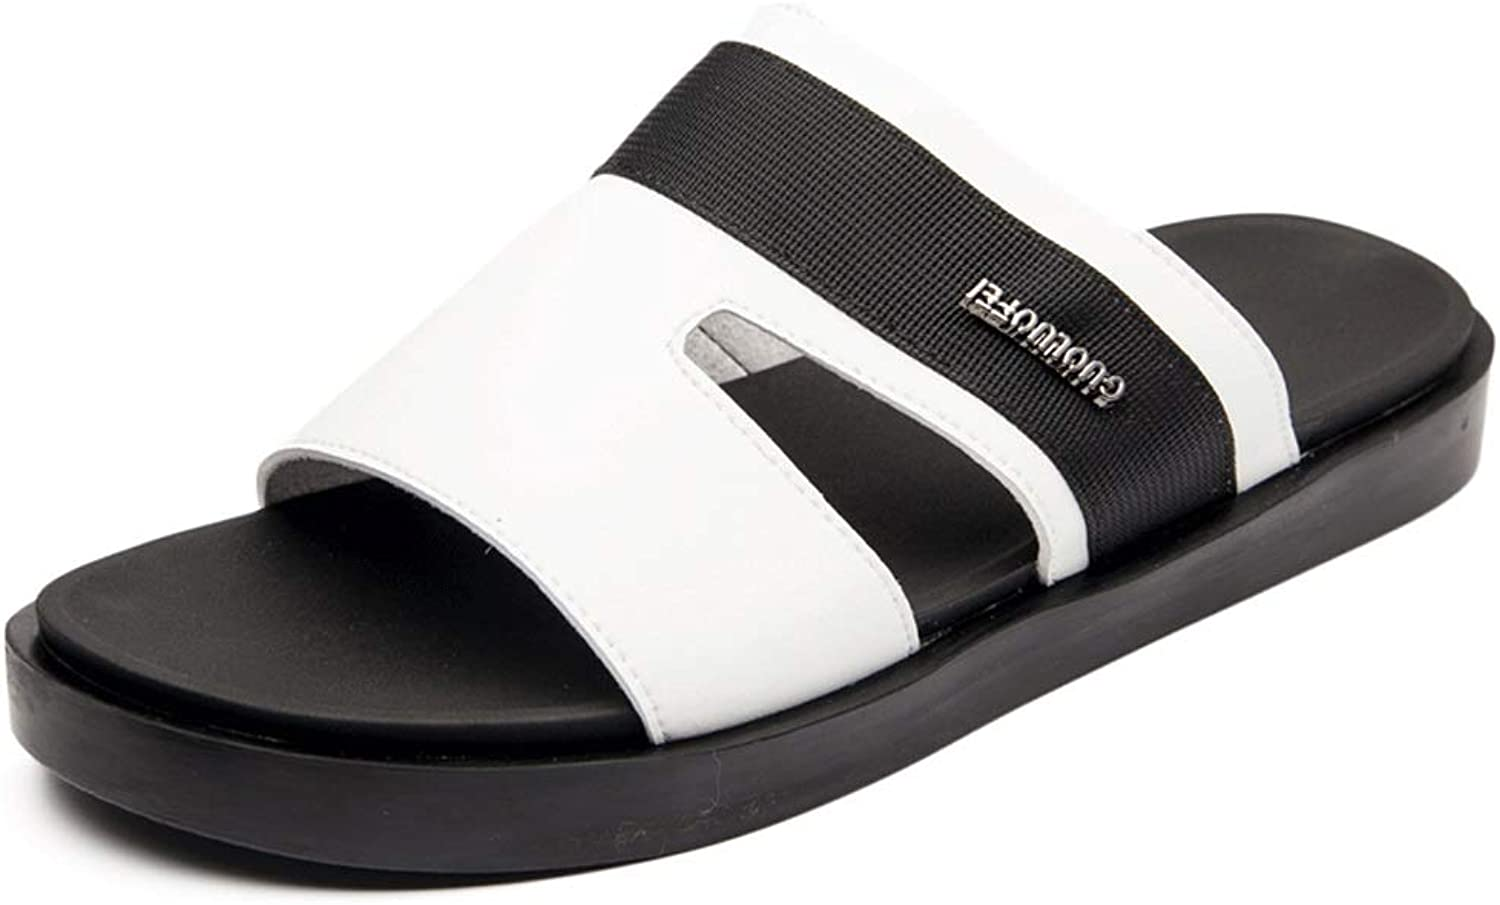 LiXiZhong Summer Men's Sandals And Slippers Fashion Outdoor Casual Men's Sandals Comfortable Non-slip Slippers (color   White, Size   45 EU)